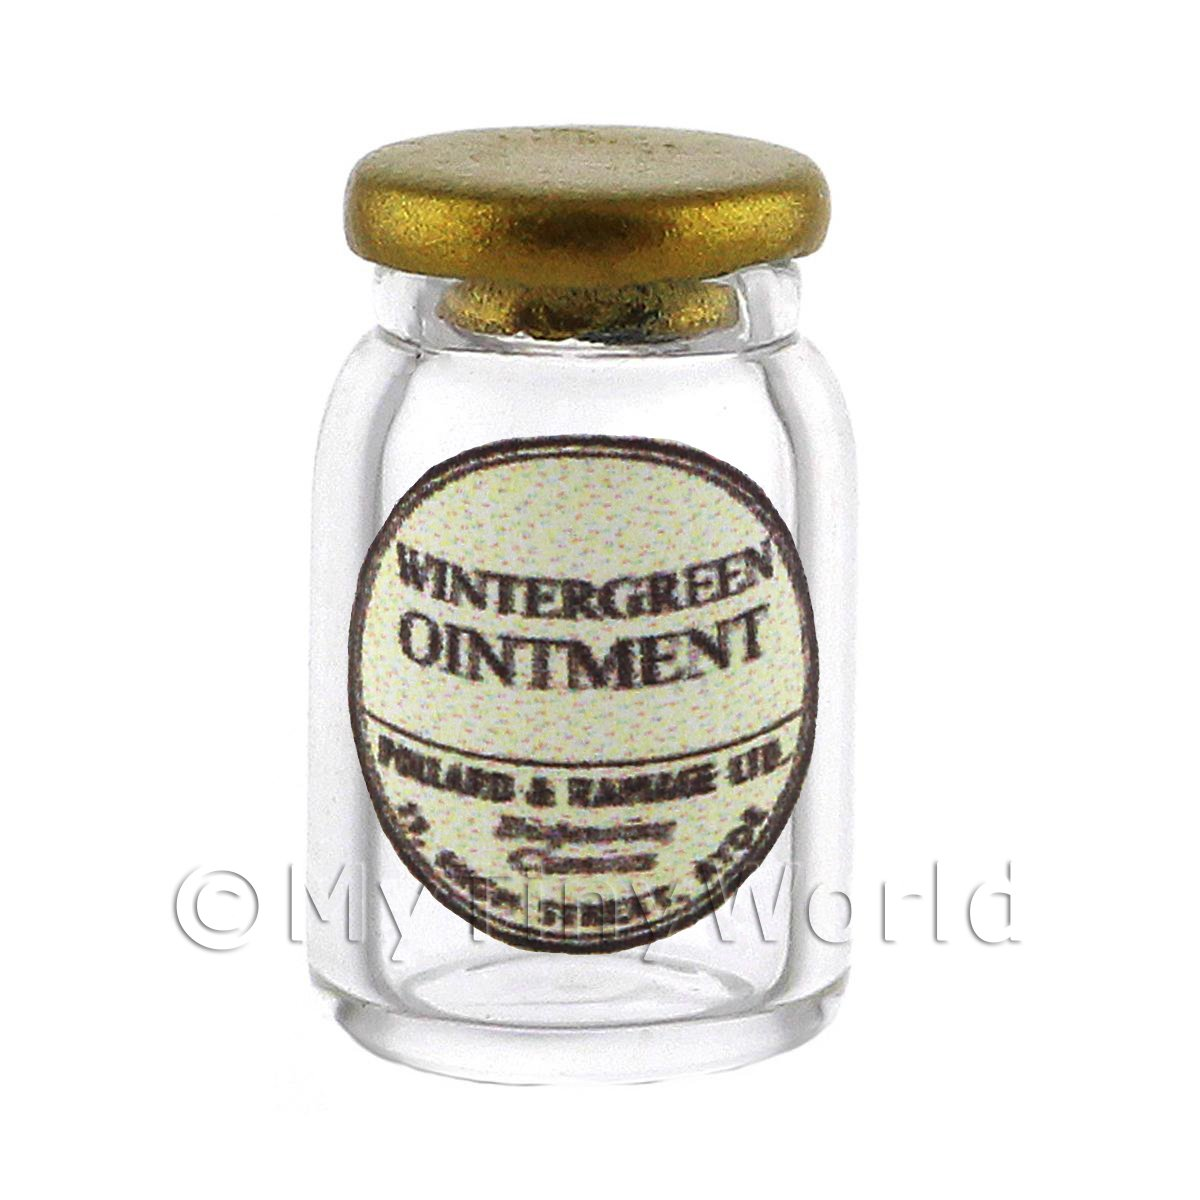 Miniature Wintergreen Ointment Glass Apothecary Ointment Jar